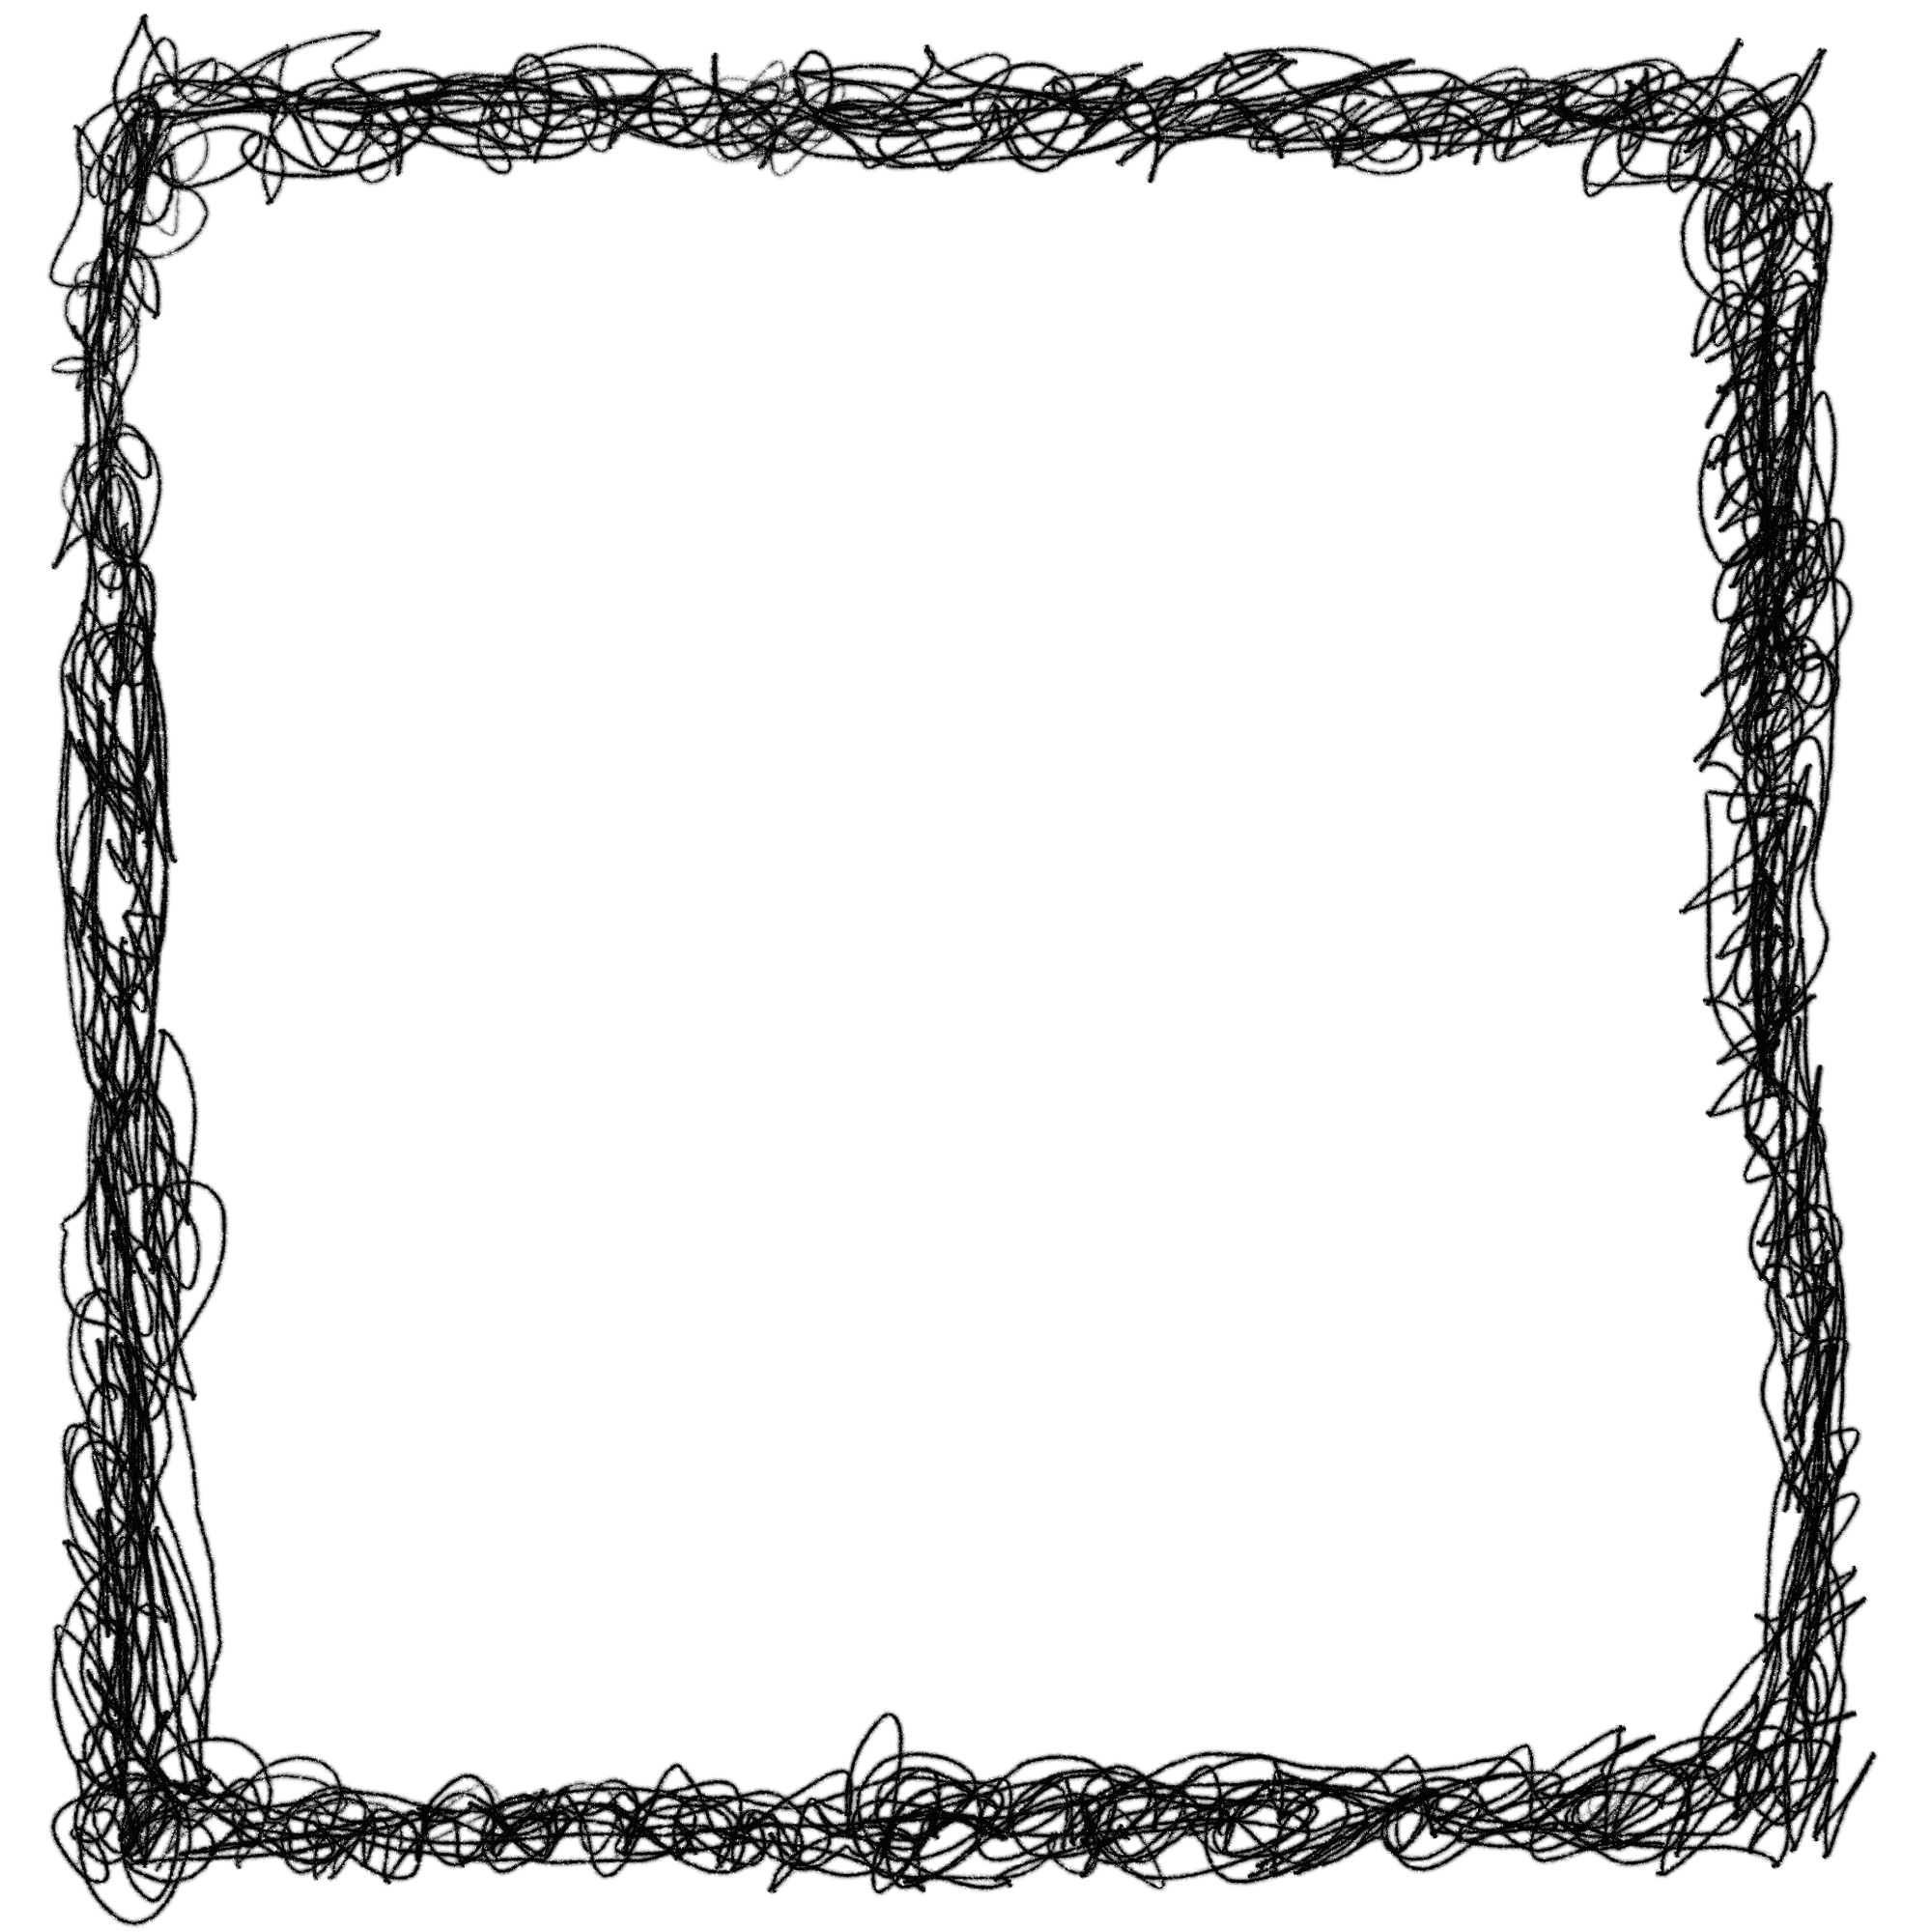 square scribble transparent. Picture frame png